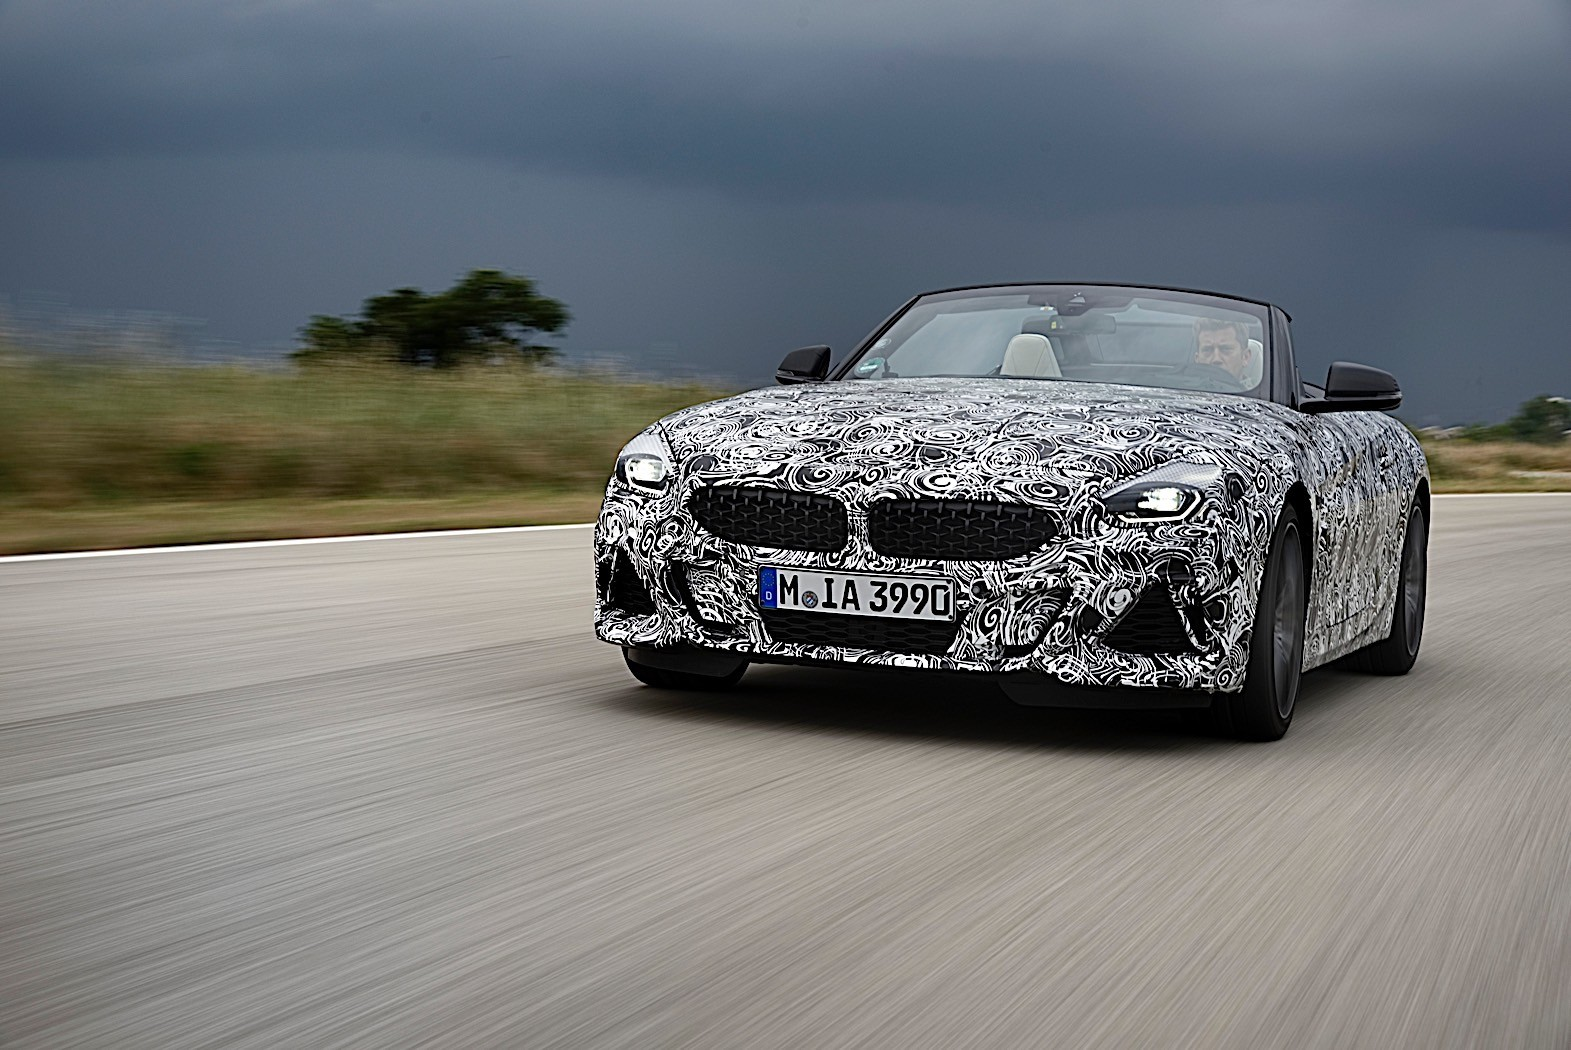 2019 Bmw Z4 Headlight Taillight Design Reaveled By Patent